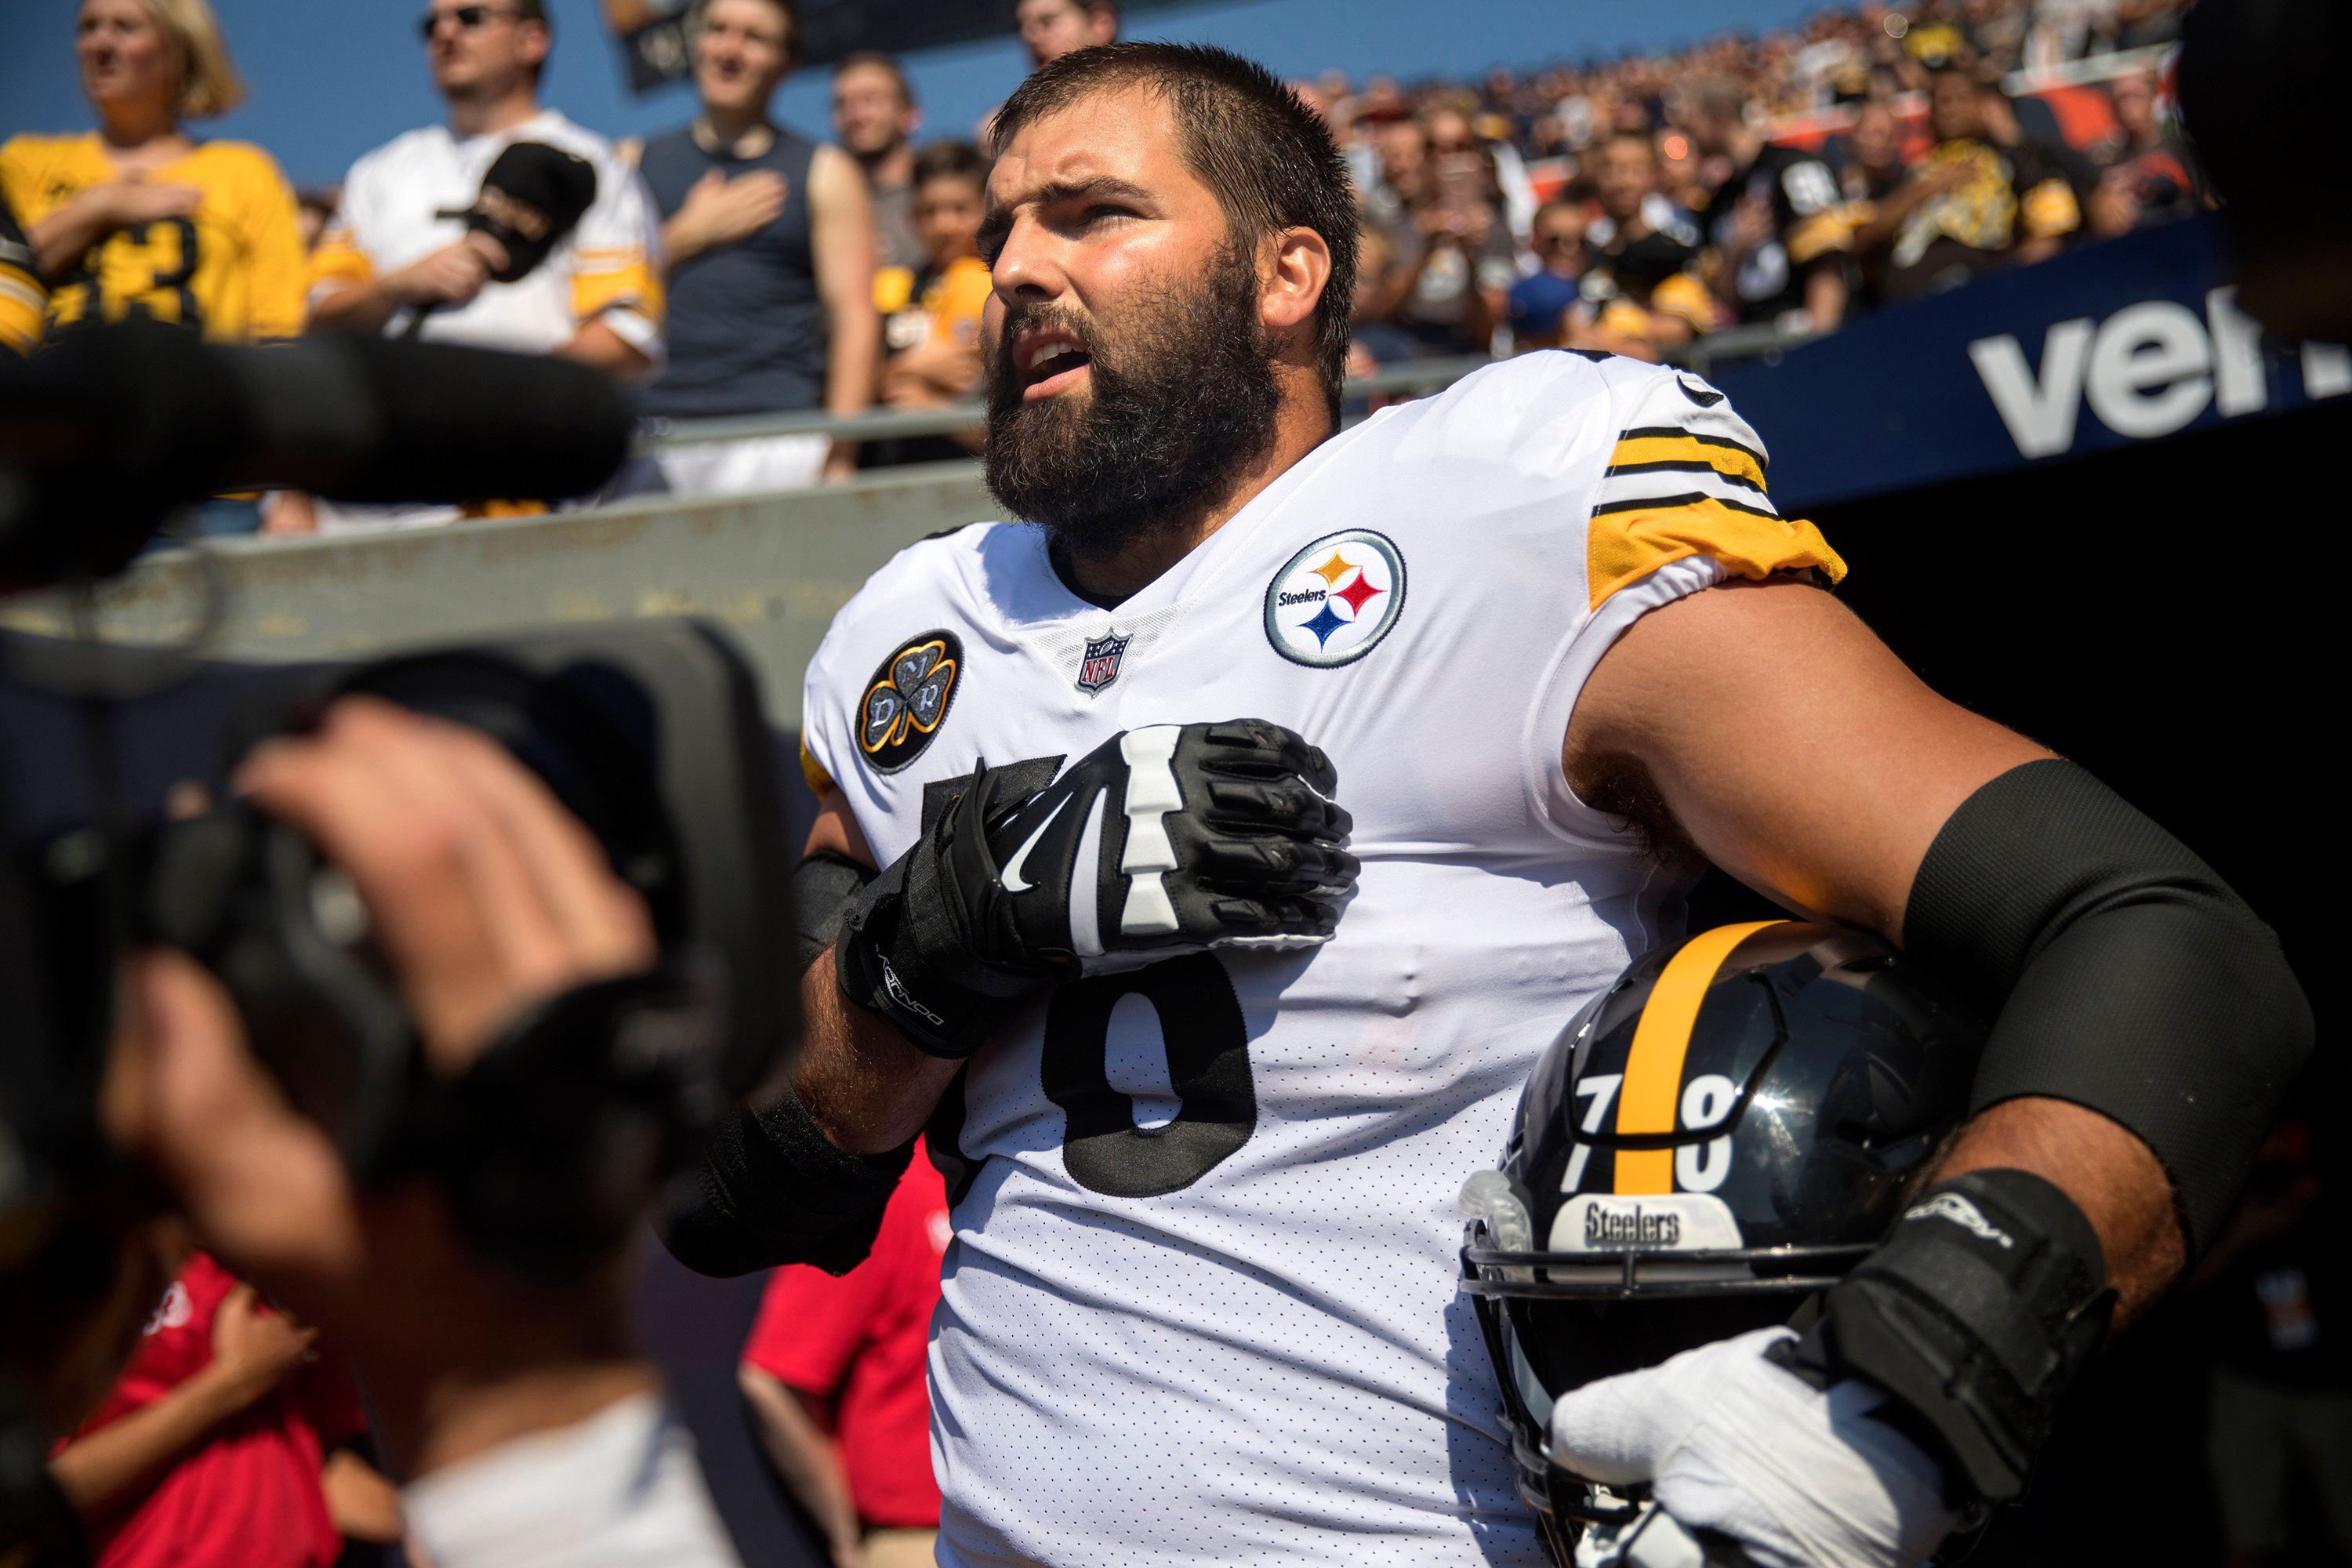 Pittsburgh Steelers offensive tackle Alejandro Villanueva (78) is the sole member of the team to stand in the open for the national anthem while his teammates remained in the tunnel before a game against the Chicago Bears on Sunday, Sept. 24, 2017, at Soldier Field in Chicago, Ill. (Erin Hooley/Chicago Tribune/TNS via Getty Images)